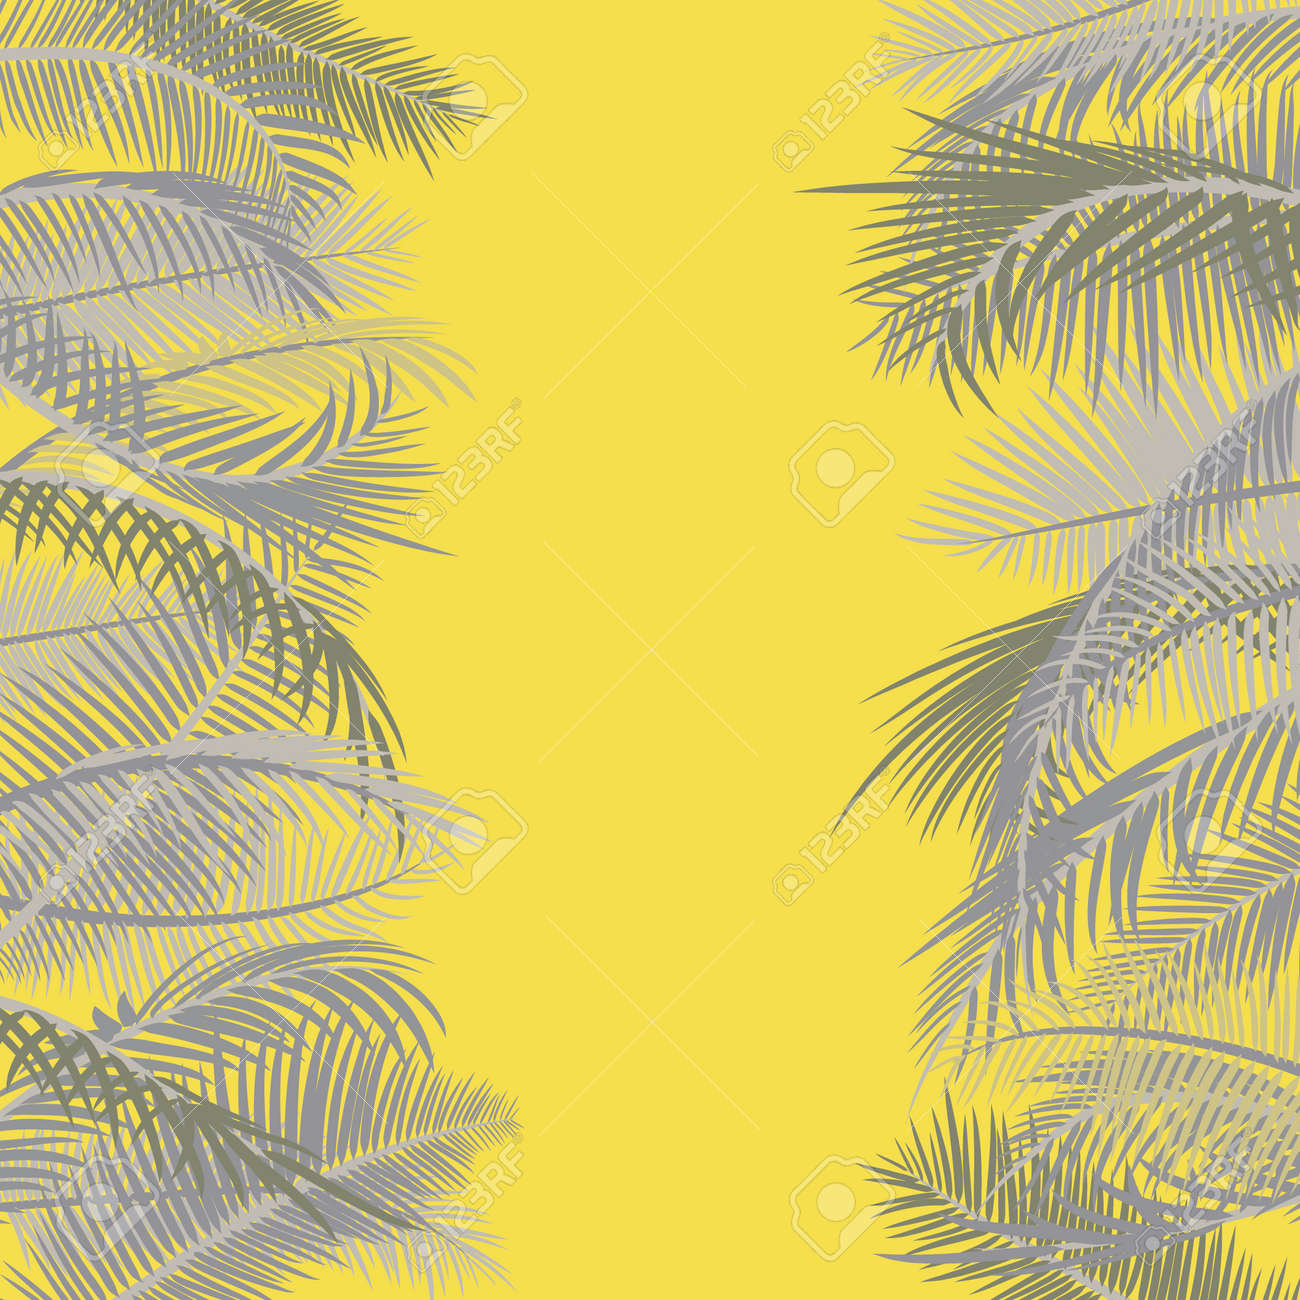 Frame from branches of palm tree in yellow and gray. Color trends Ultimate gray and Illuminating Yellow. Palm leaves on a yellow sunny background. Vector illustration. Border with place for text - 160456118